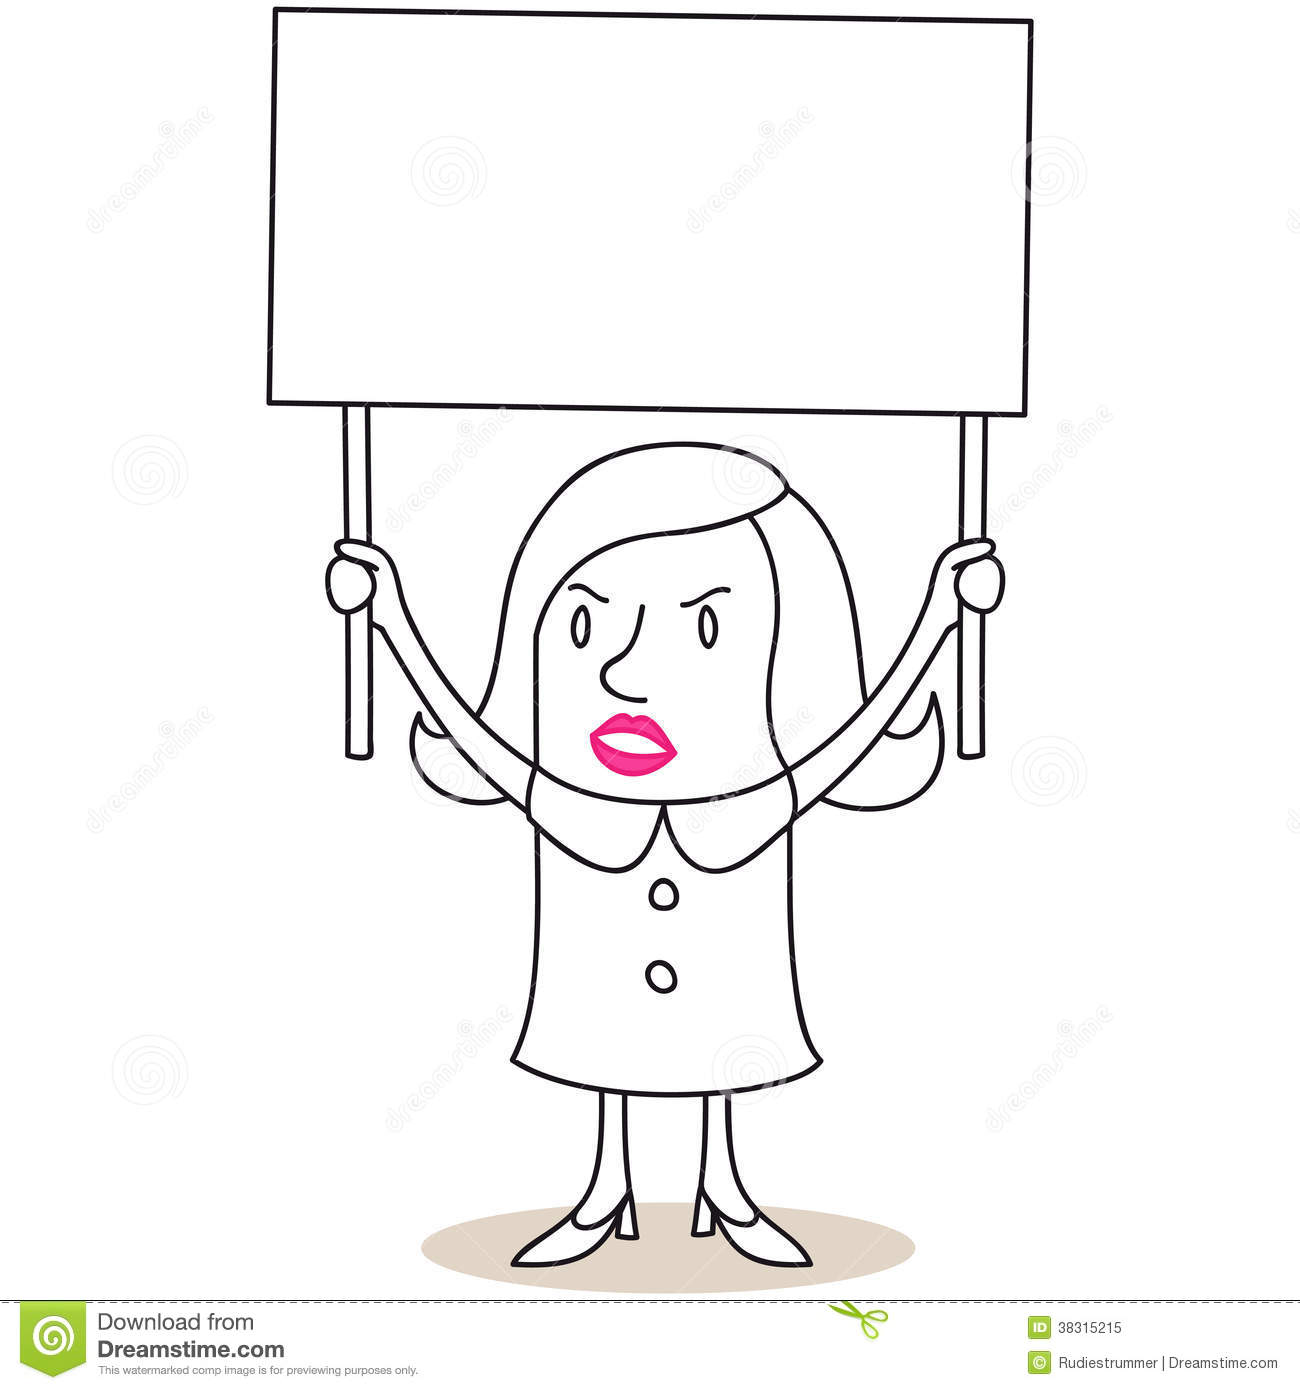 70602 264 rl 090 o moreover Hand Outline likewise Royalty Free Stock Photo Protesting Woman Blank Sign Image38315215 further Coloring together with 23090 Blank Shield Logo Vector. on free blank graphics